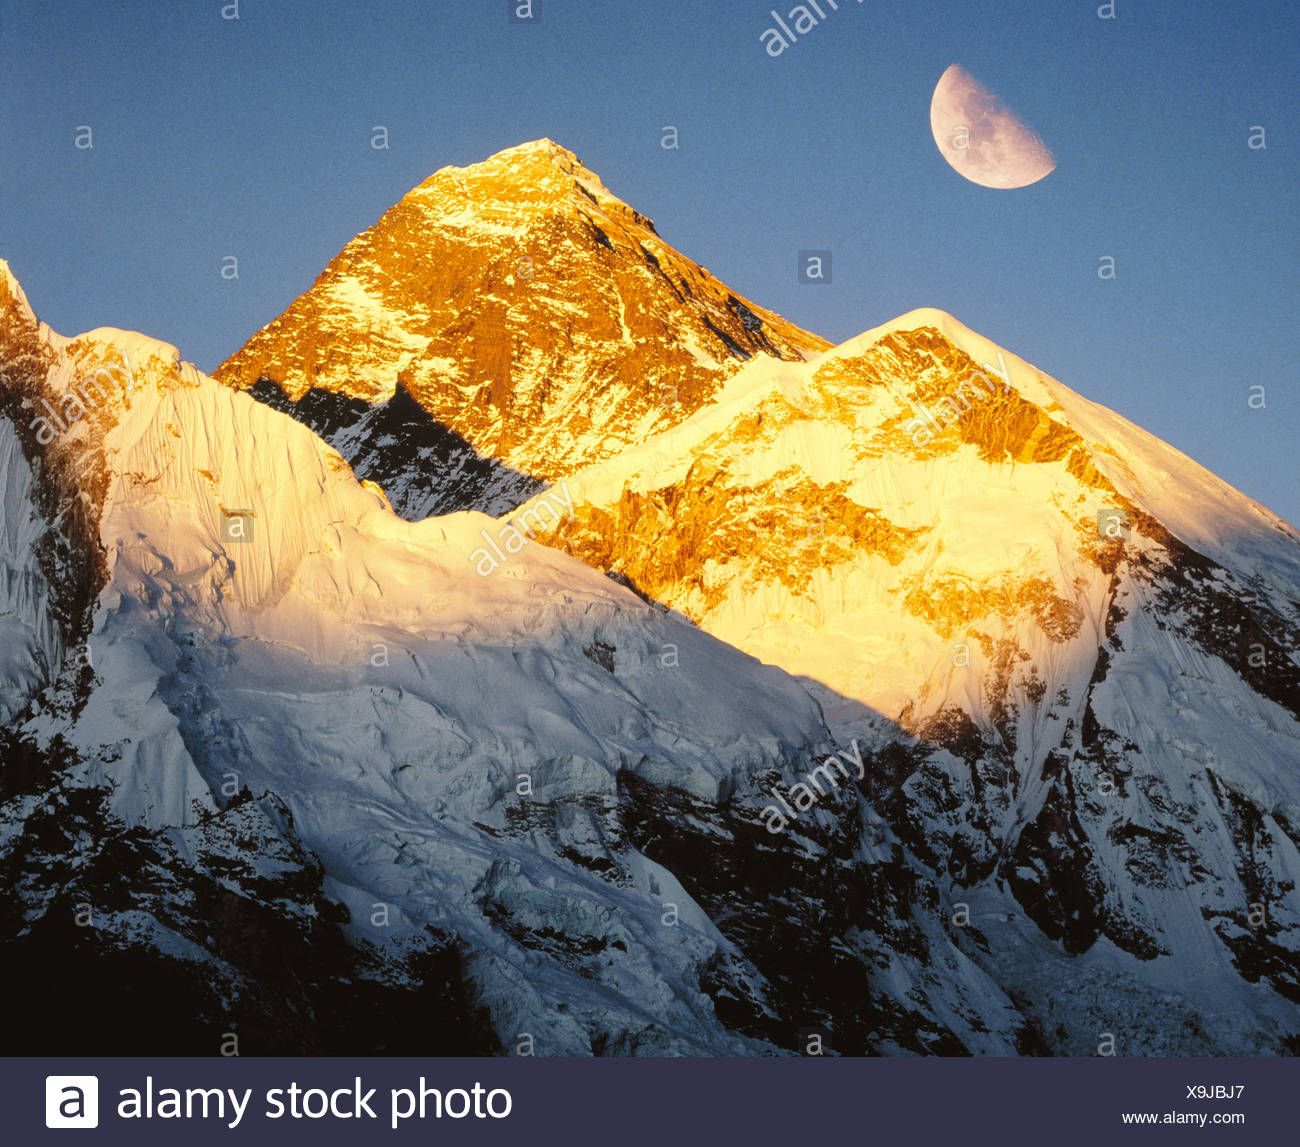 8. 846 ms. evening sun summit peak half moon crescent Himalayas Mount Everest mountain Nepal Asia - Stock Image